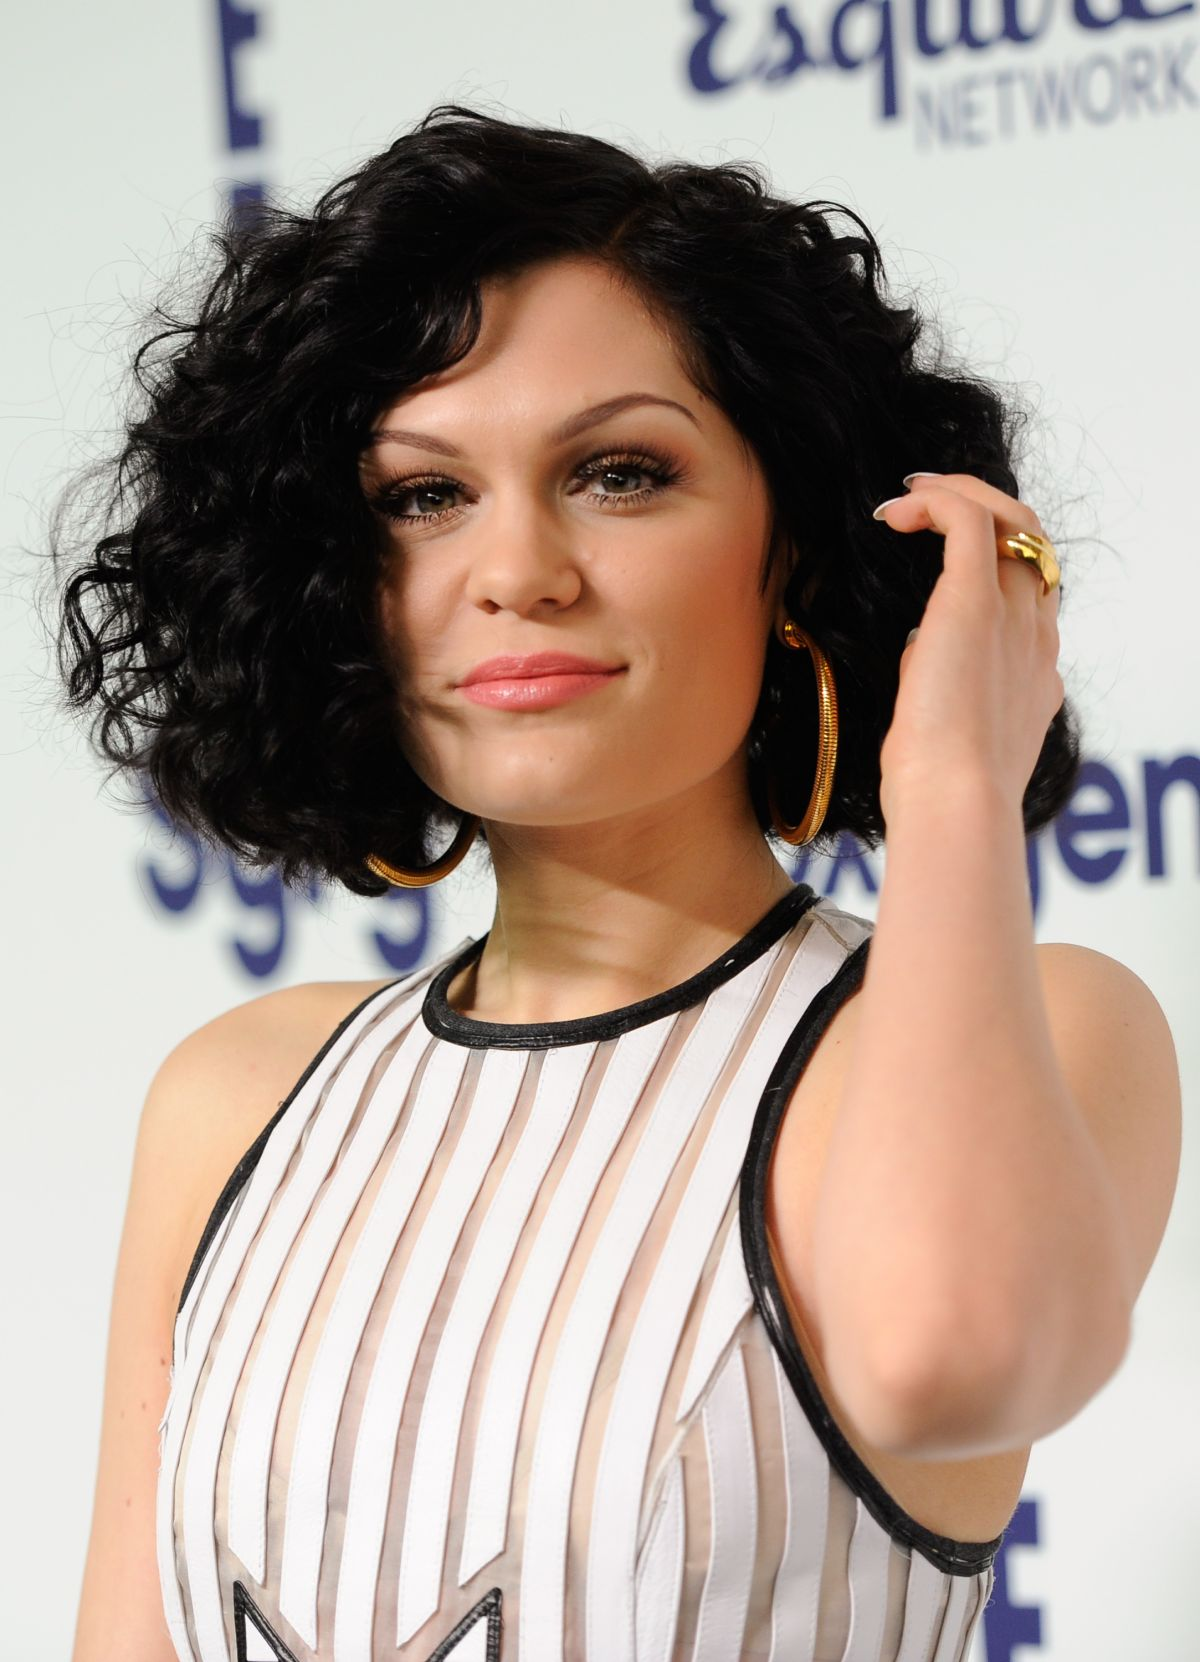 JESSIE J at NBC/Universal Cable Entertainment Upfront Presentation in New York